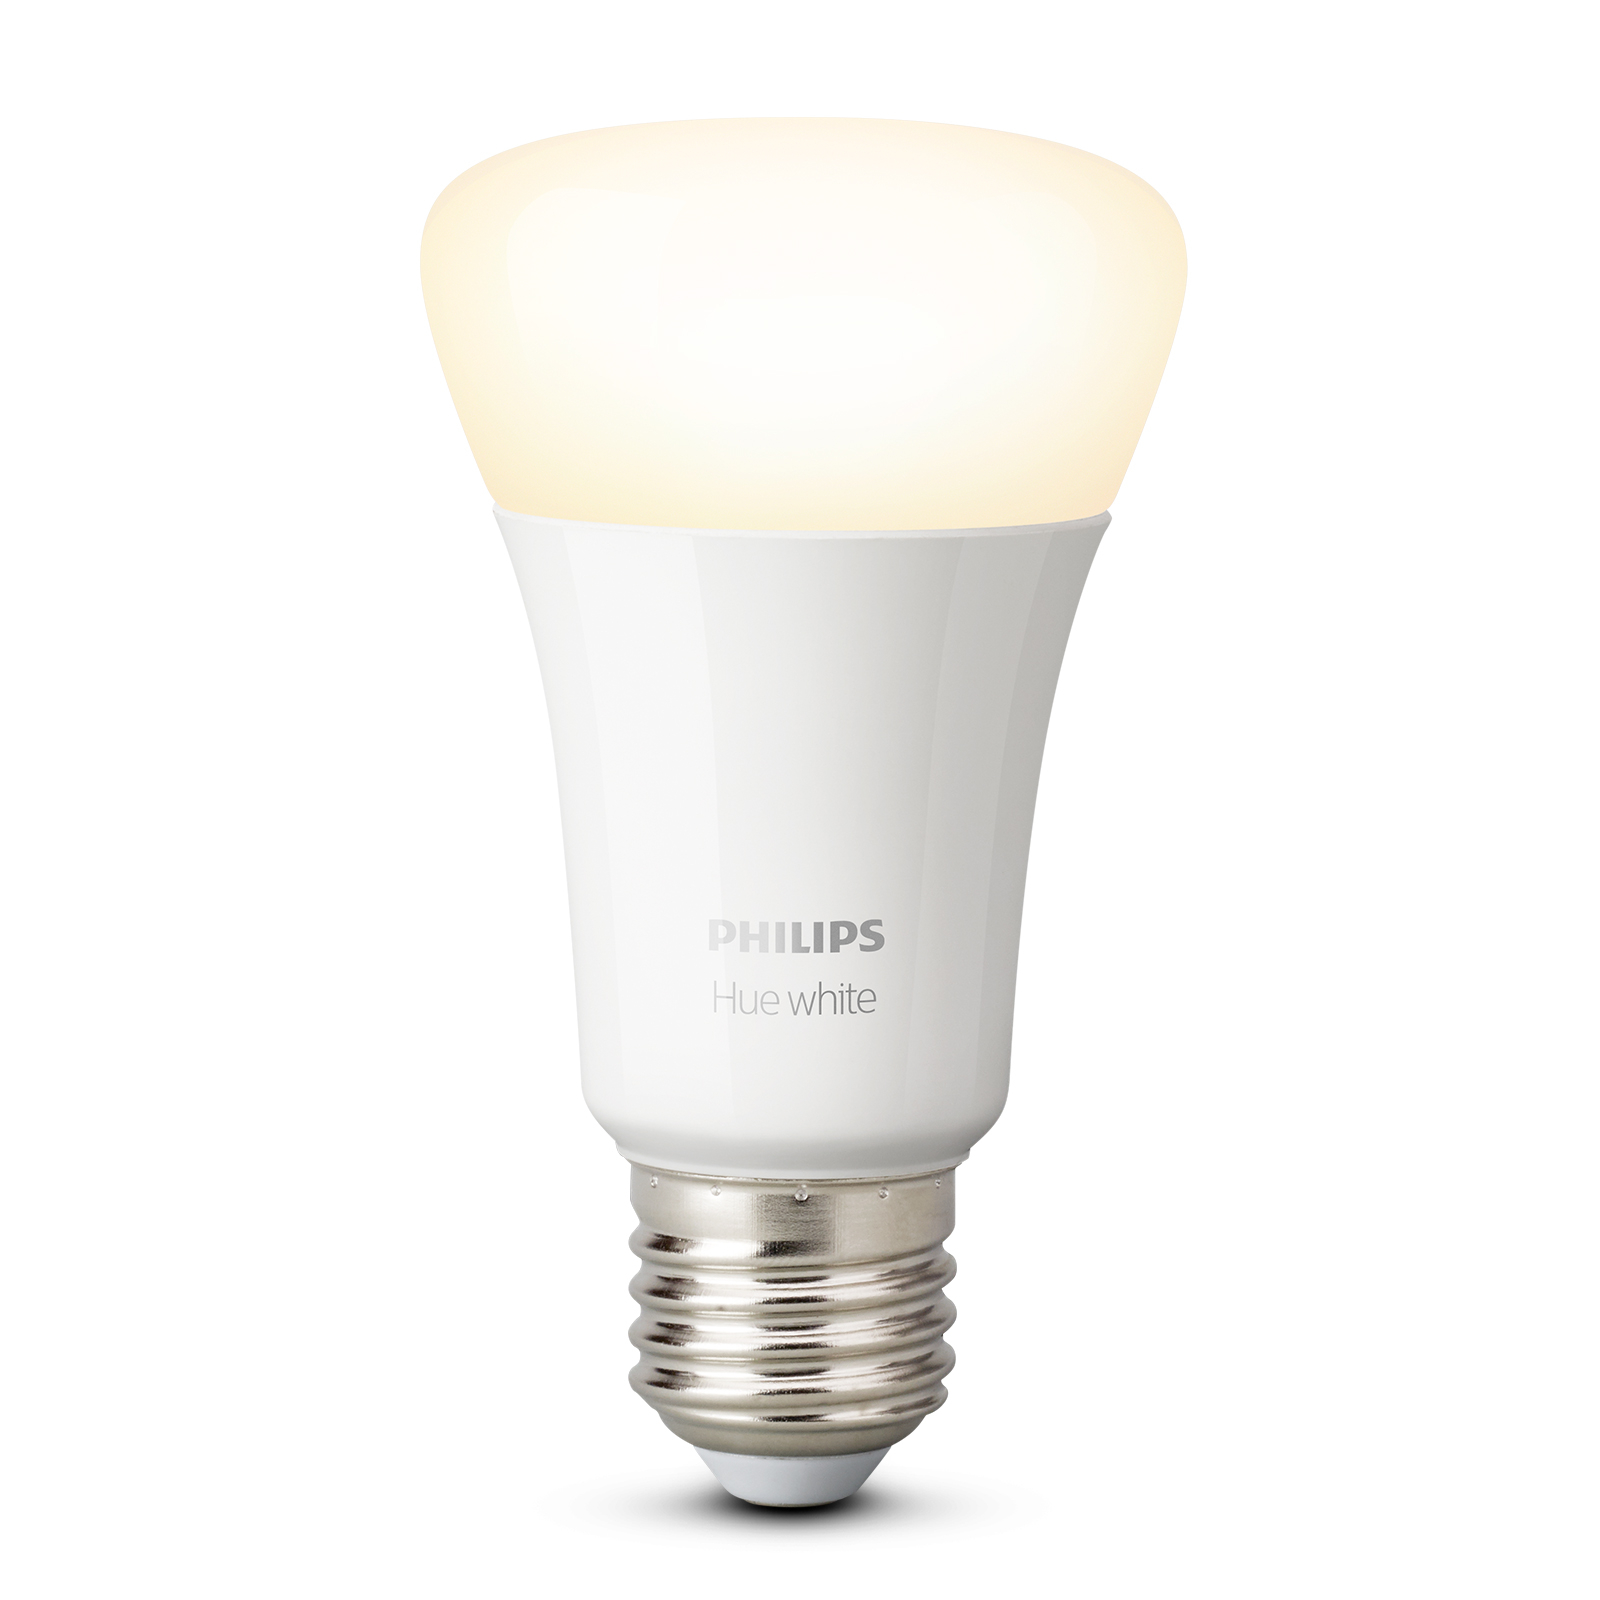 Philips Hue White 9 W E27 lampadina LED